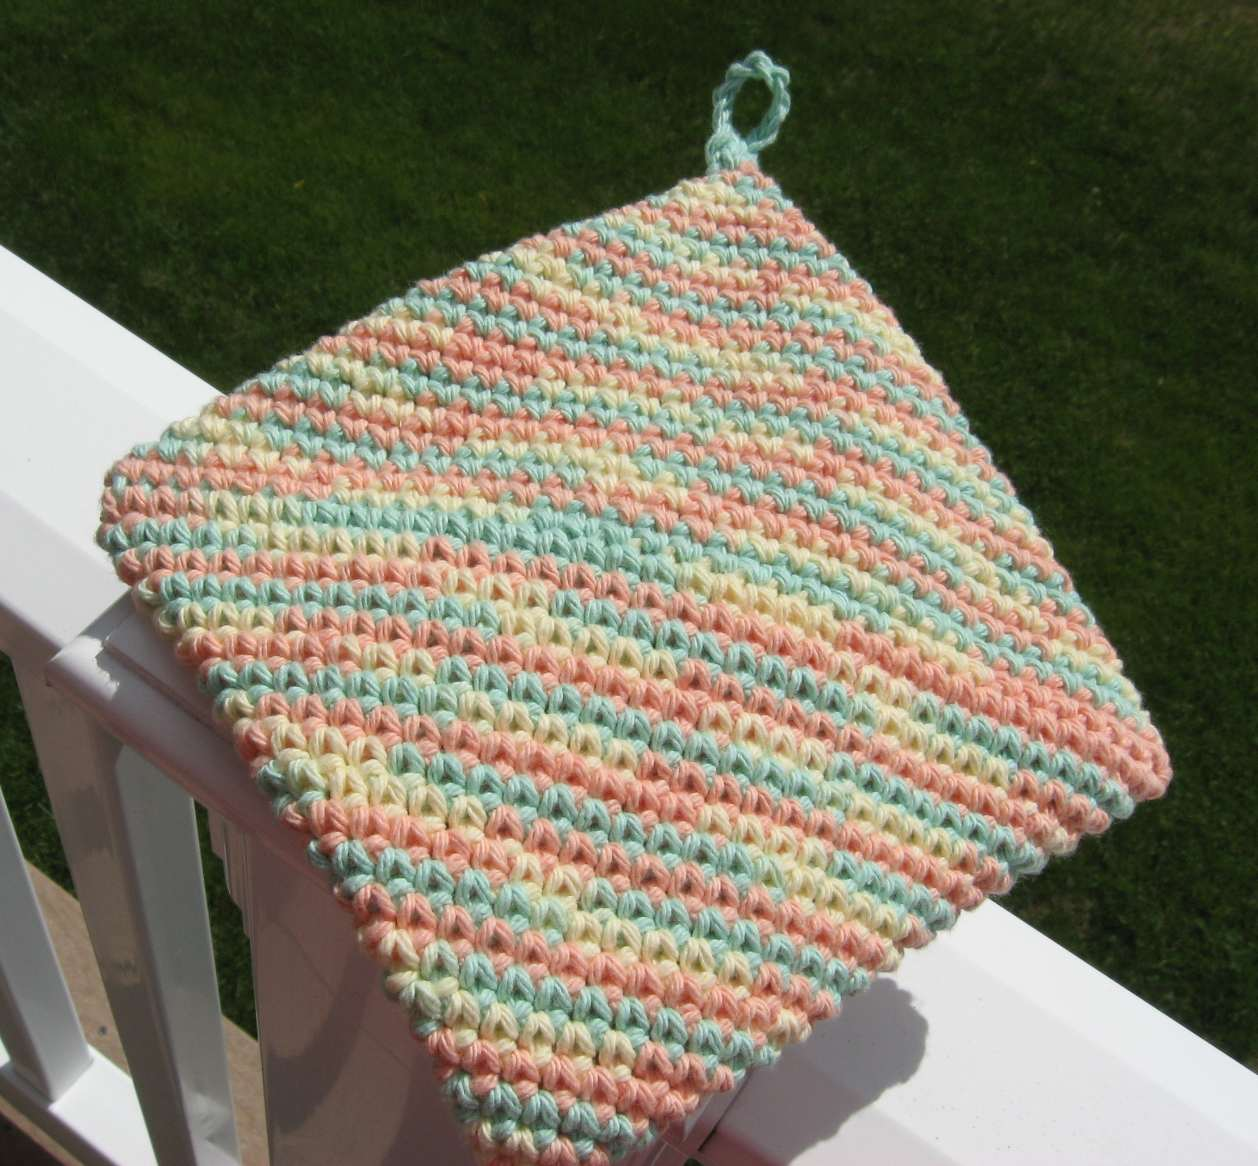 Hooked on Needles: Crocheted Cotton Hotpad/Potholder - video tutorial